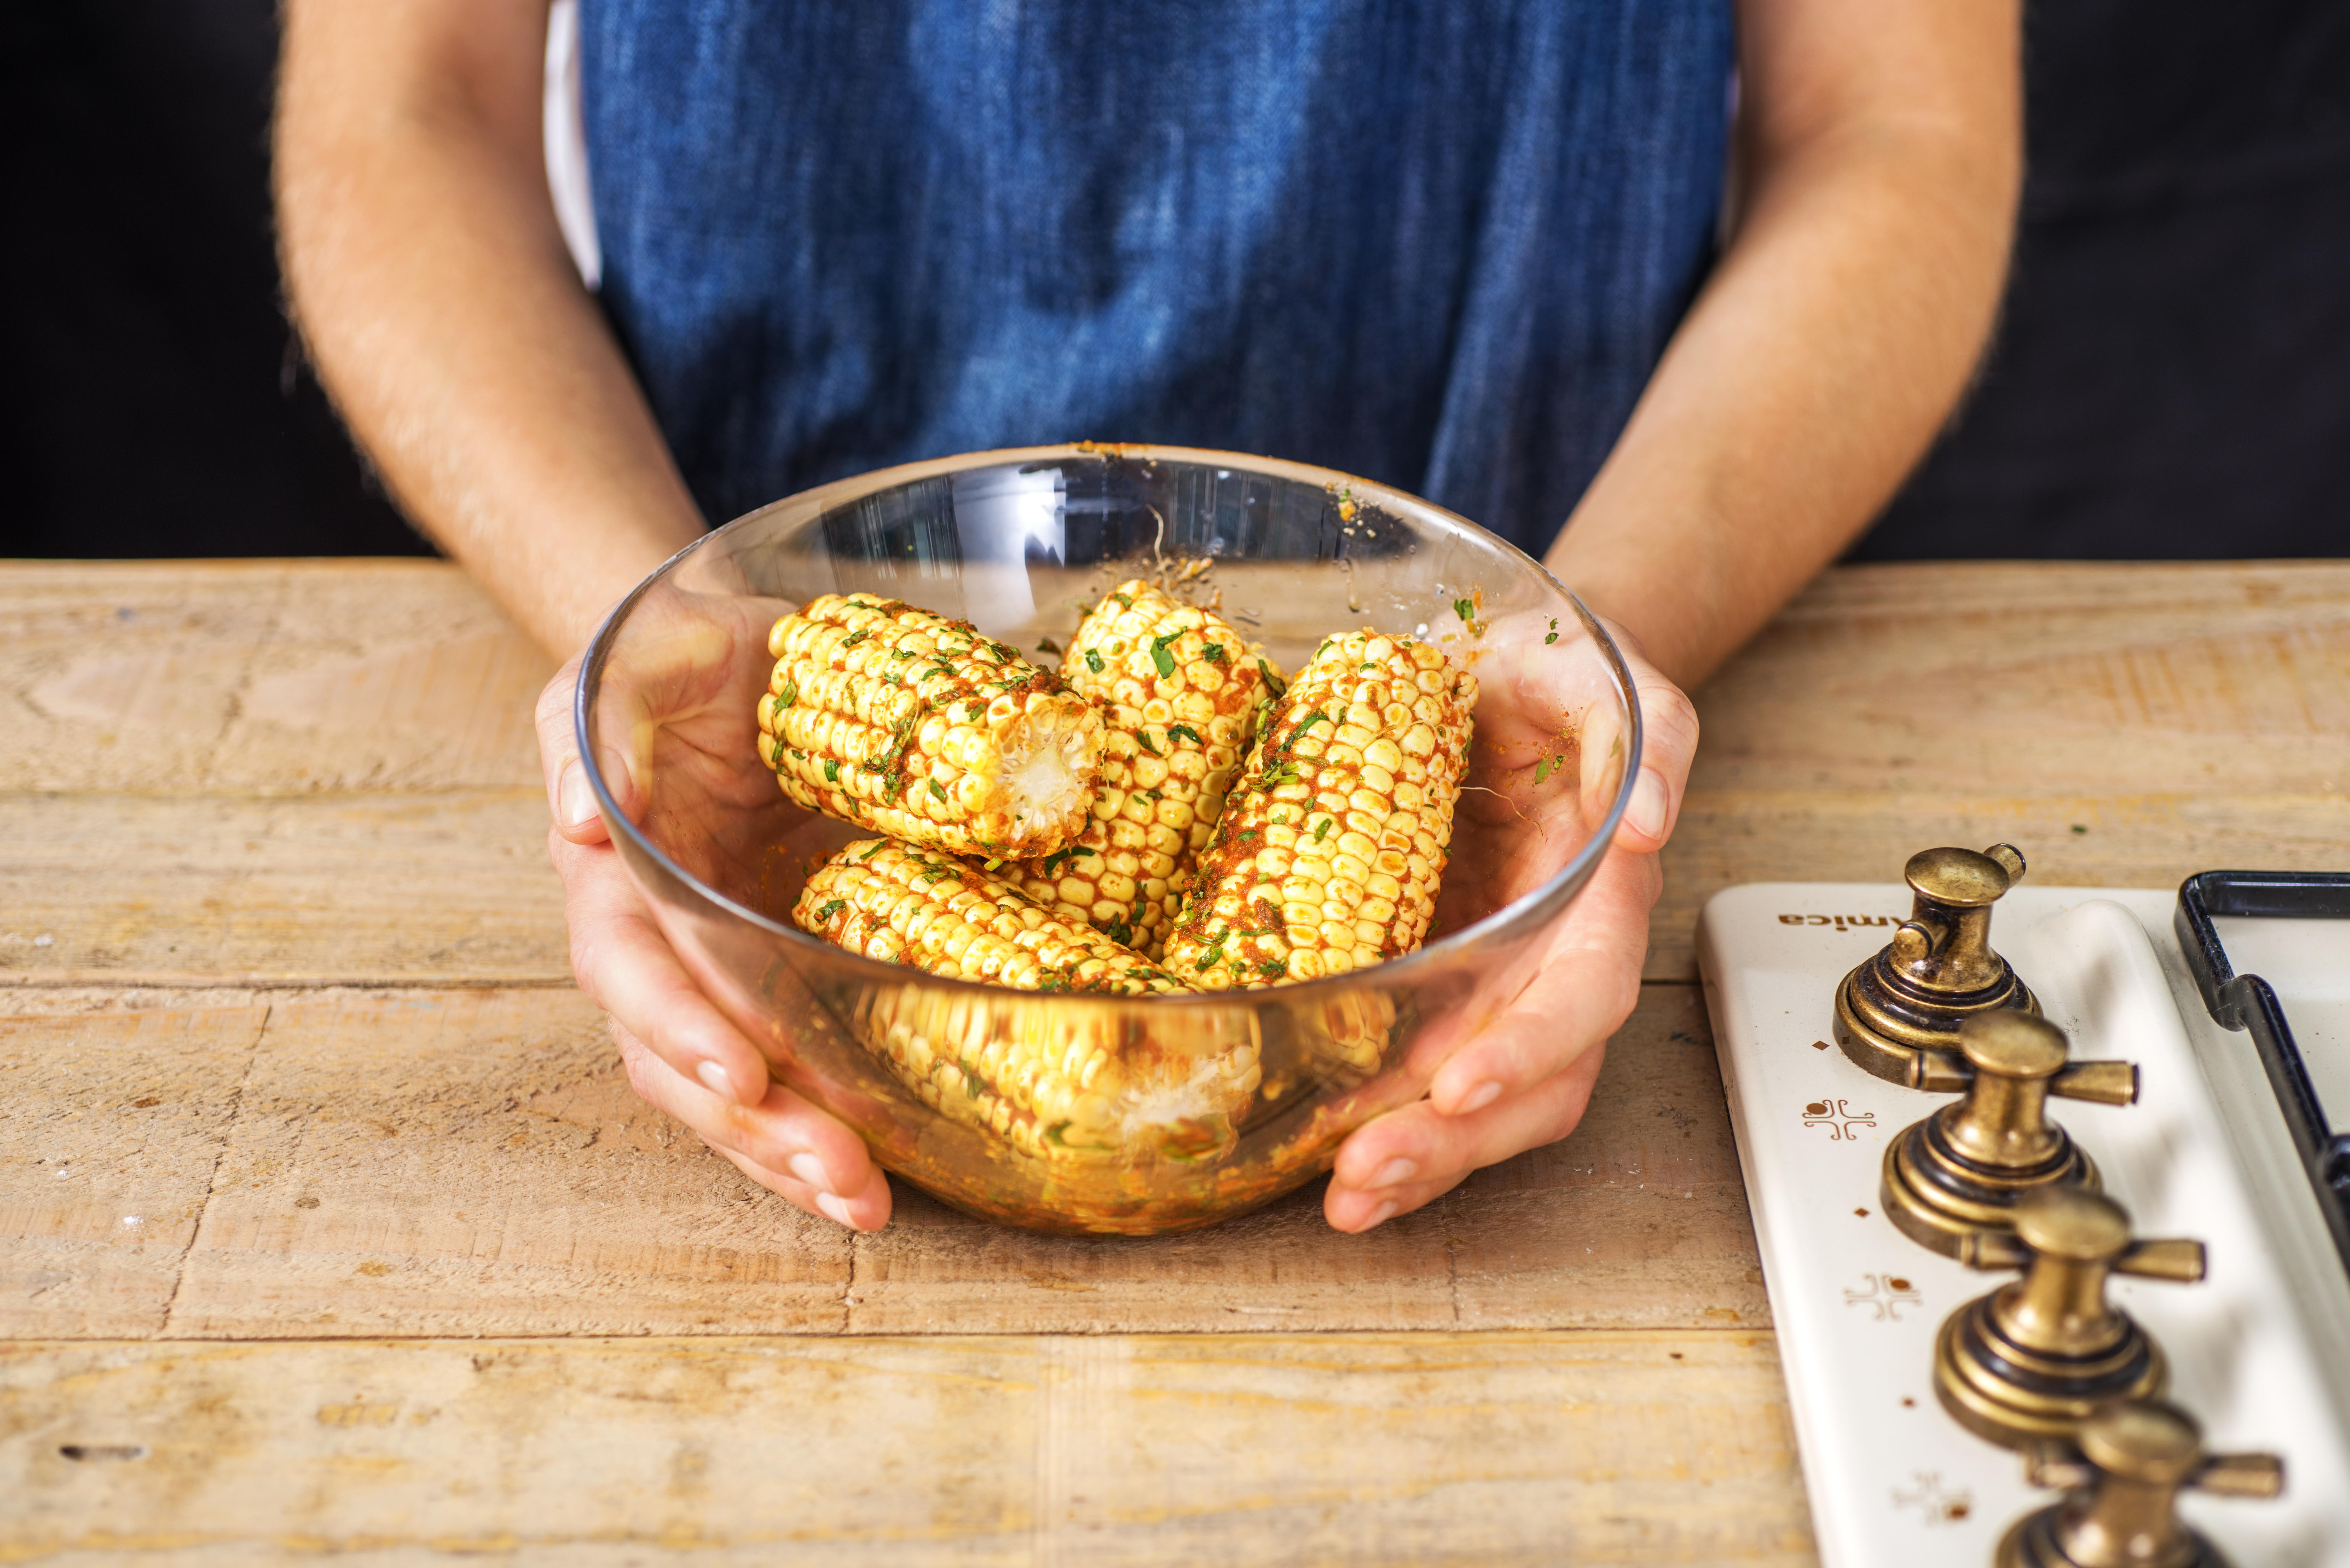 How to Reheat Corn on the Cob in the Microwave